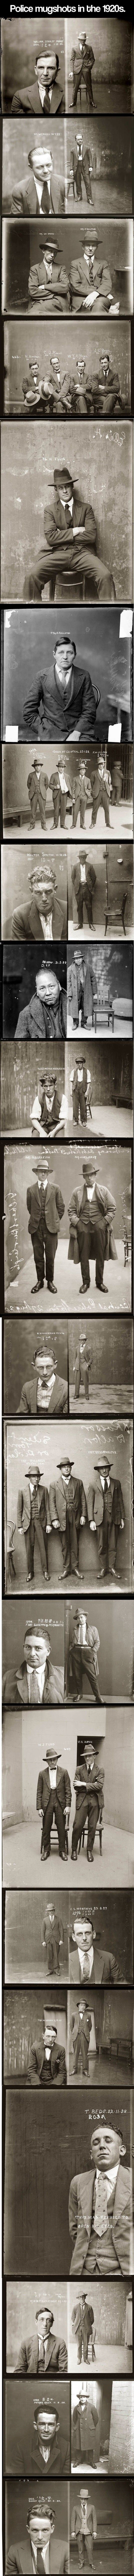 Police mugshots in the 1920s... - One Stop Humor: Funny Pictures and Videos!